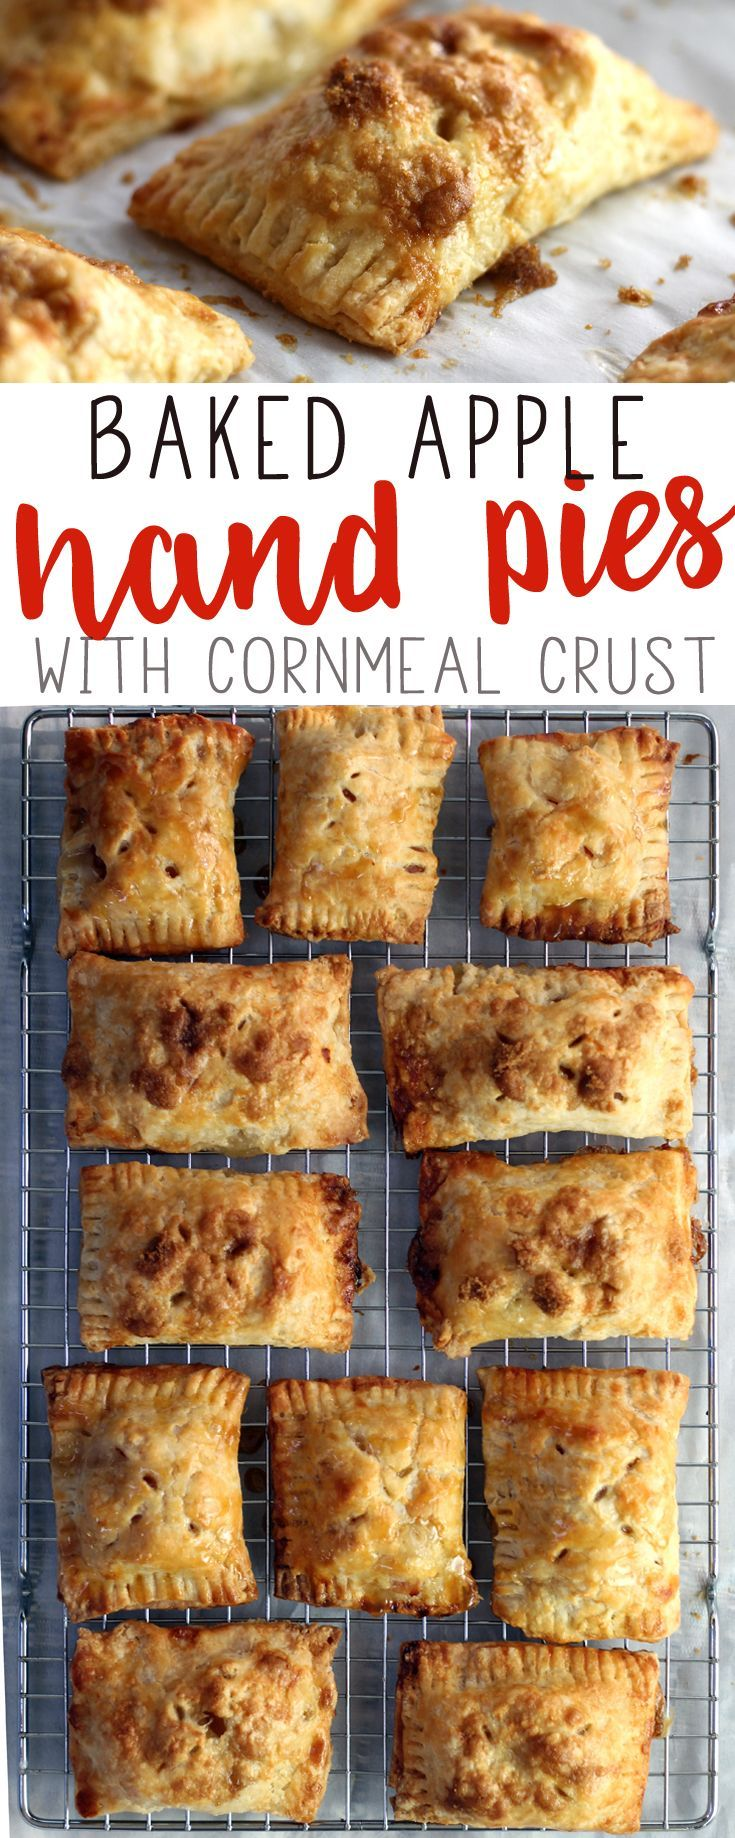 #AD Fall is here, ya'll. You know what that means, right? Fall baking. The cinnamon and apples, the smells and spices floating through my kitchen...these are the things that make me happy. https://buythiscookthat.com/baked-apple-hand-pies/ The season inspired us to make these delicious Baked Apple Hand Pies with Luck's Fruits. #fallbaking #applerecipe